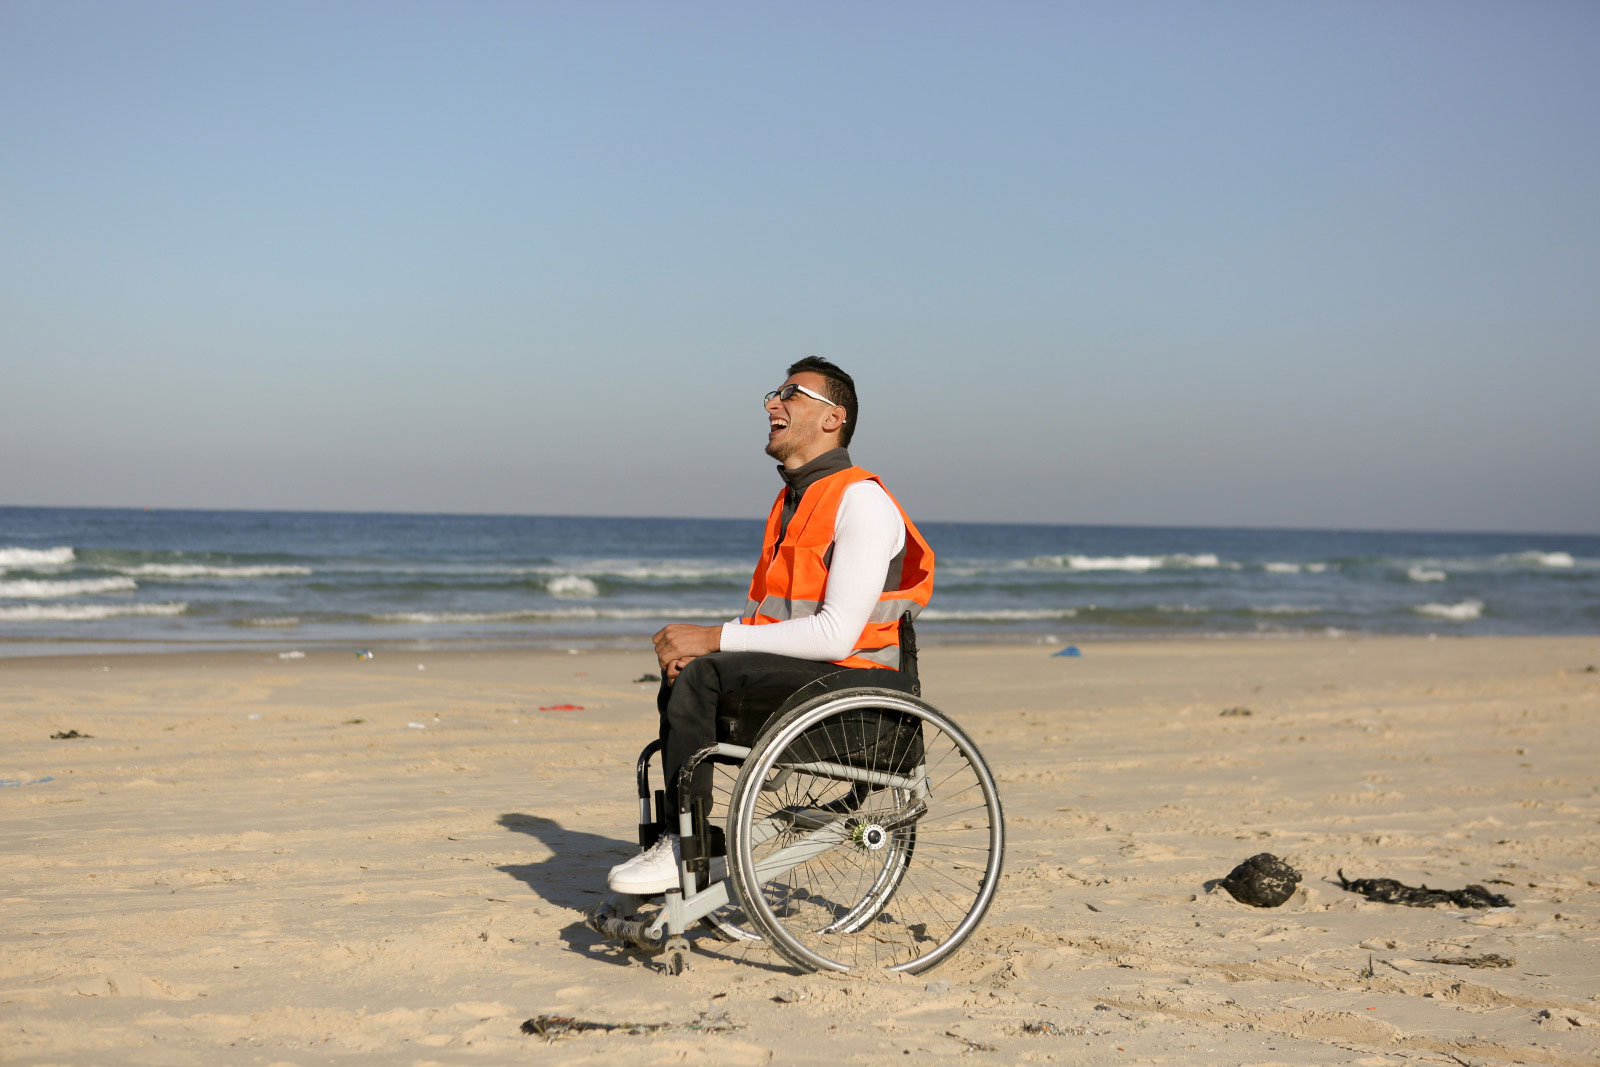 c_O-van-den-Broeck_HI__Ali_-who-enjoys-the-new-inclusive-beach-in-Gaza_-smiles-while-in-his-wheelchair-on-the-sand.jpg